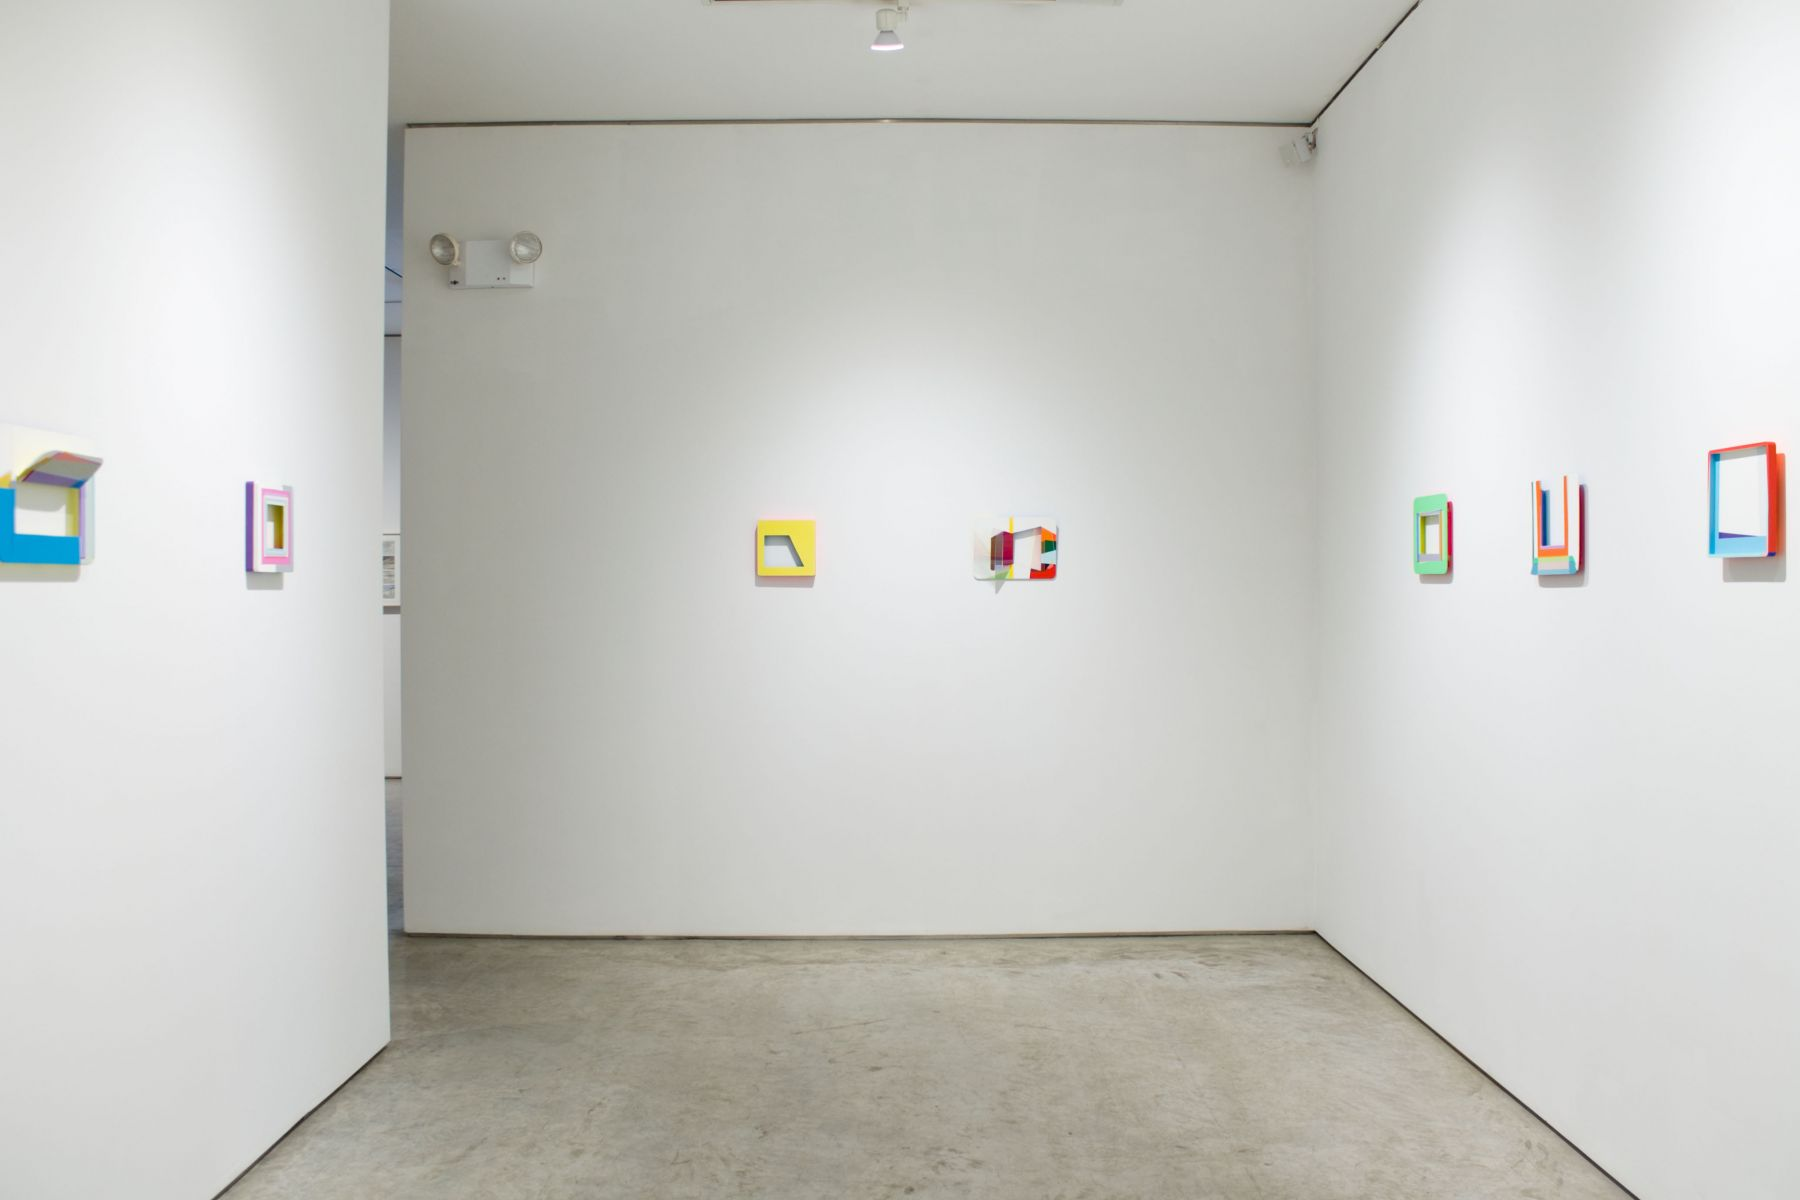 Installation view, Xuan Chen, George Adams Gallery, New York, 2017.